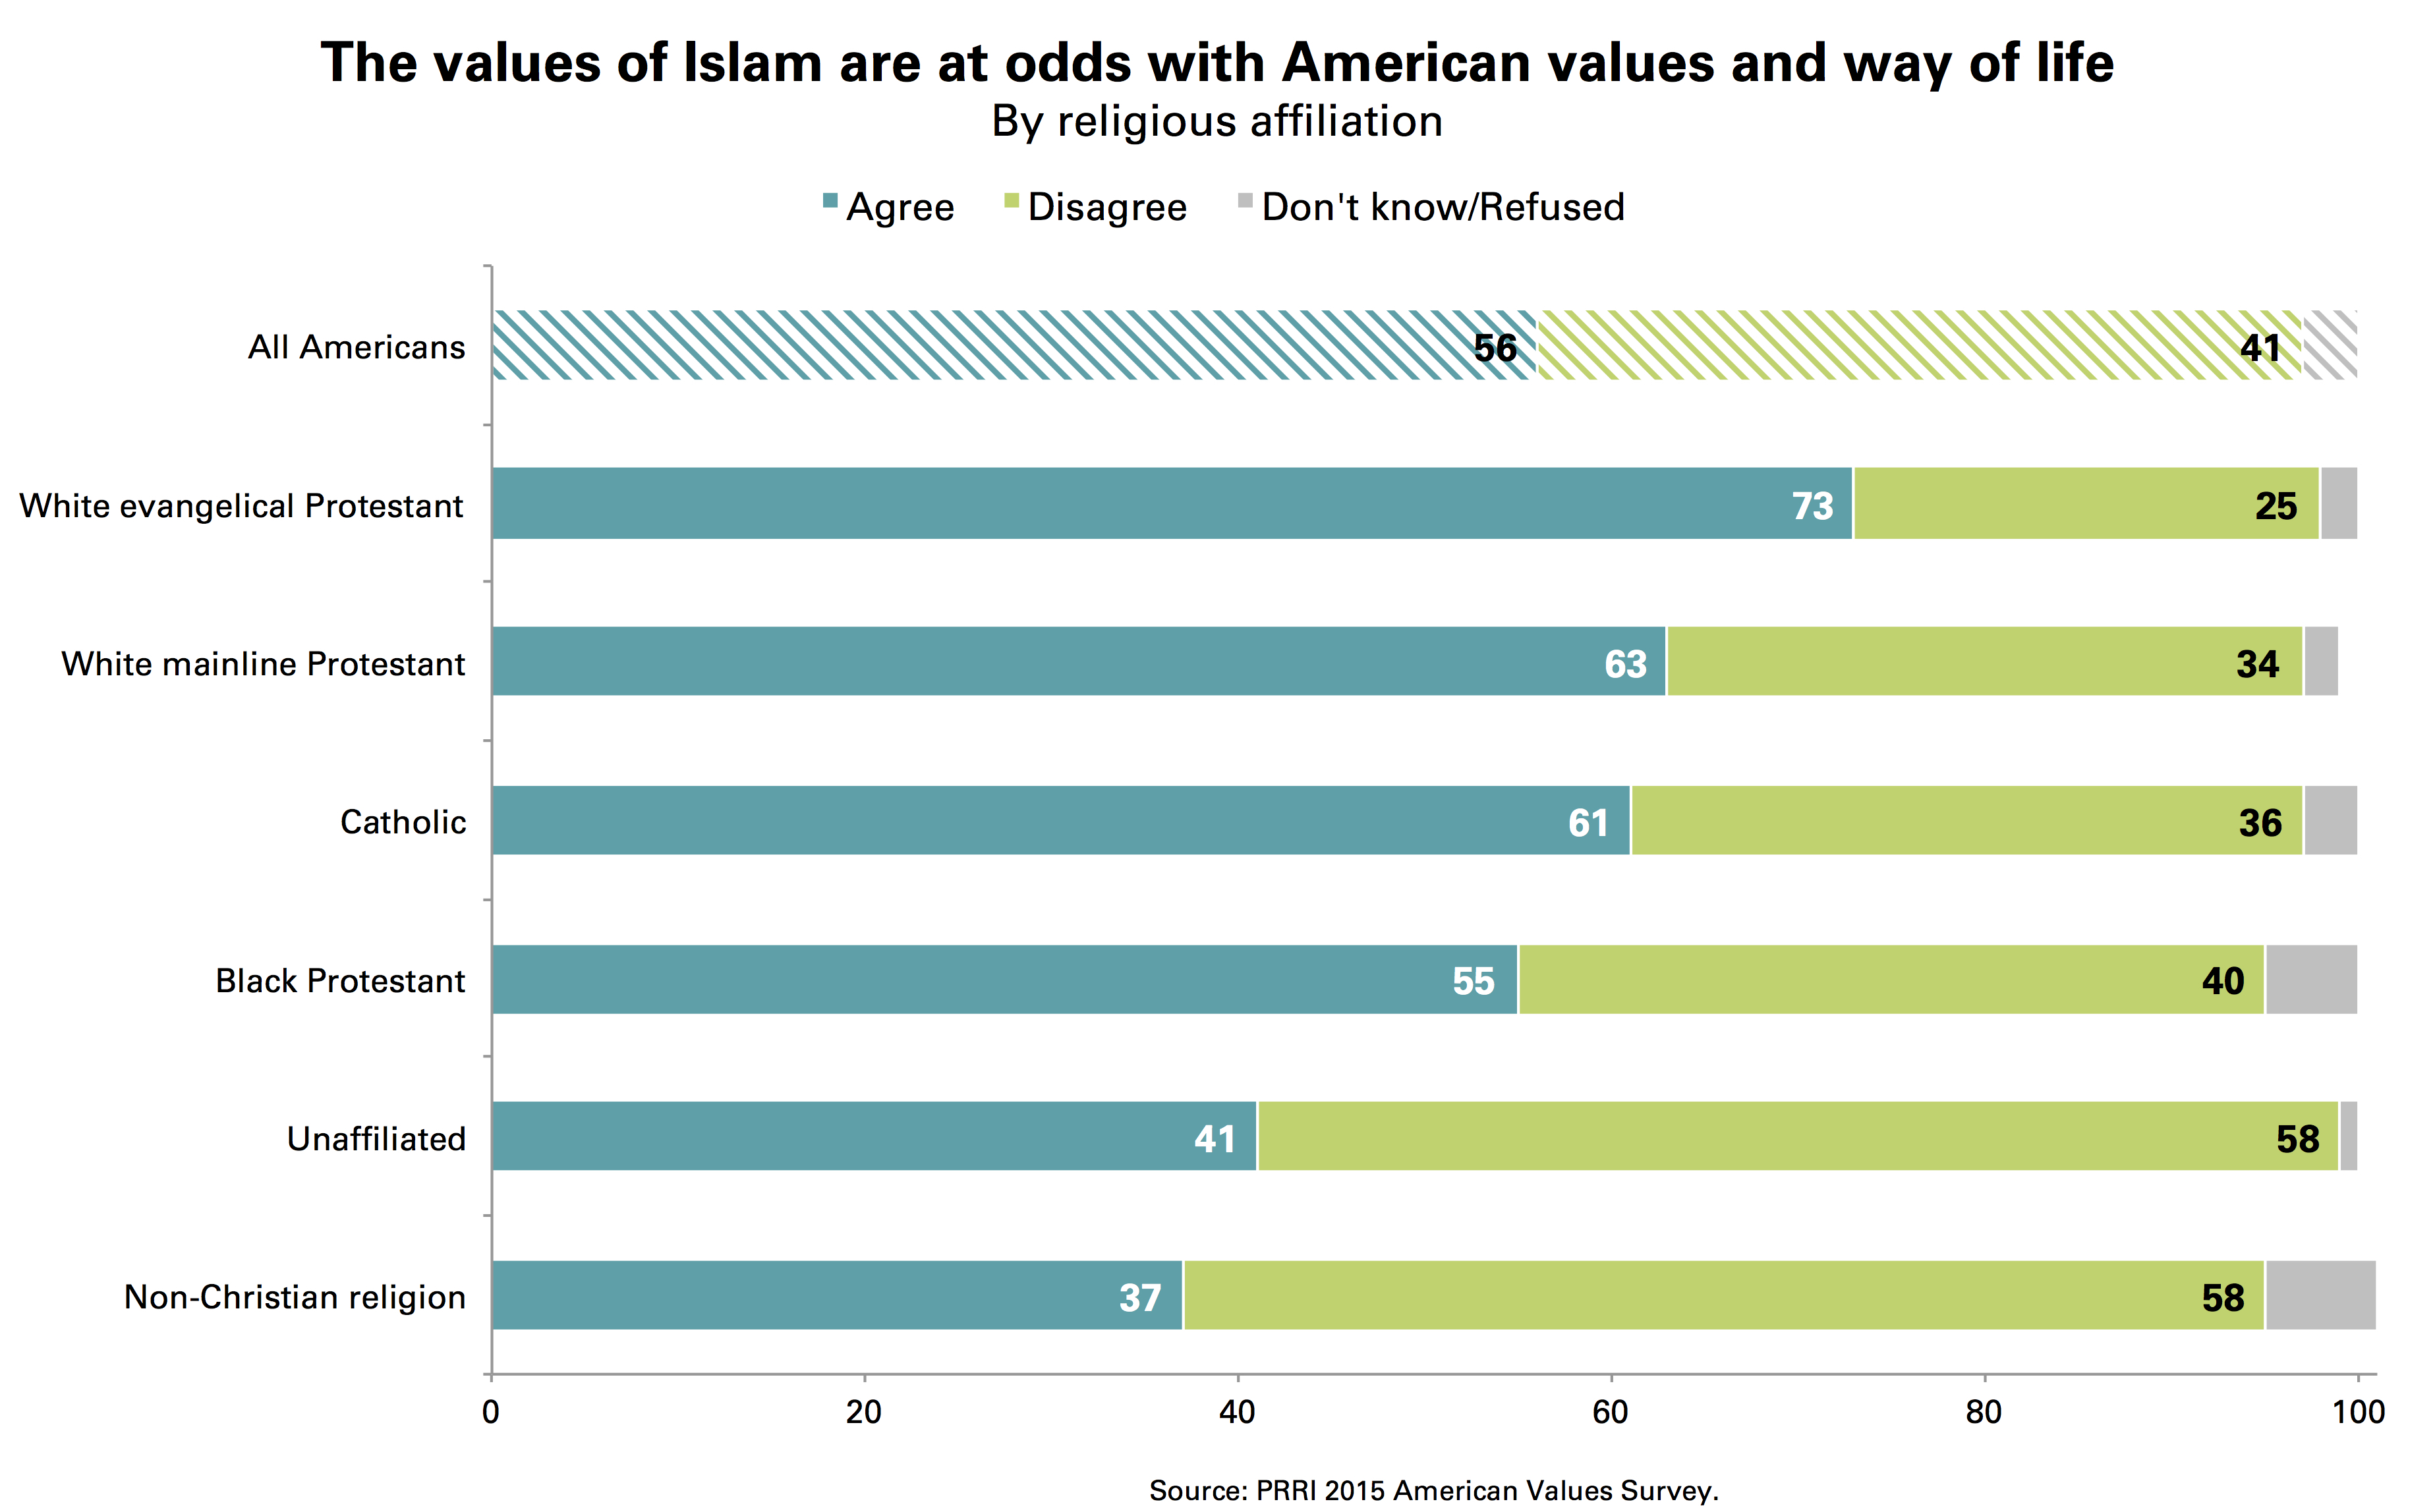 prri islam at odds by religious affiliation